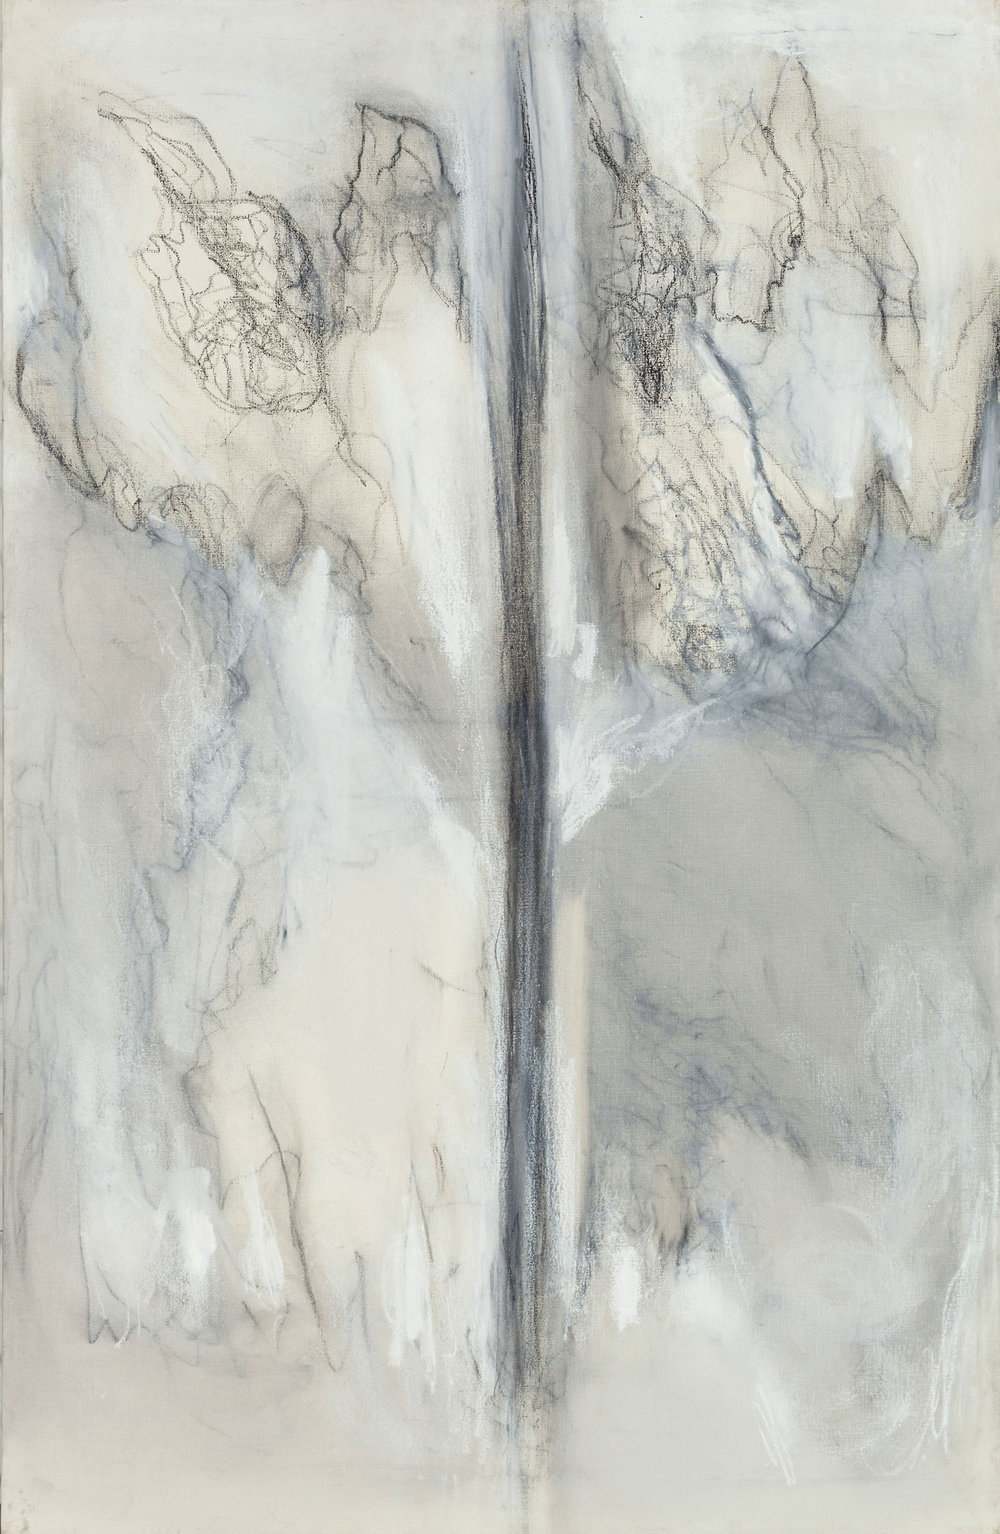 Hedda Sterne, Untitled, c. 1996, Oil, pastel on canvas, 40 in. x 26 in.